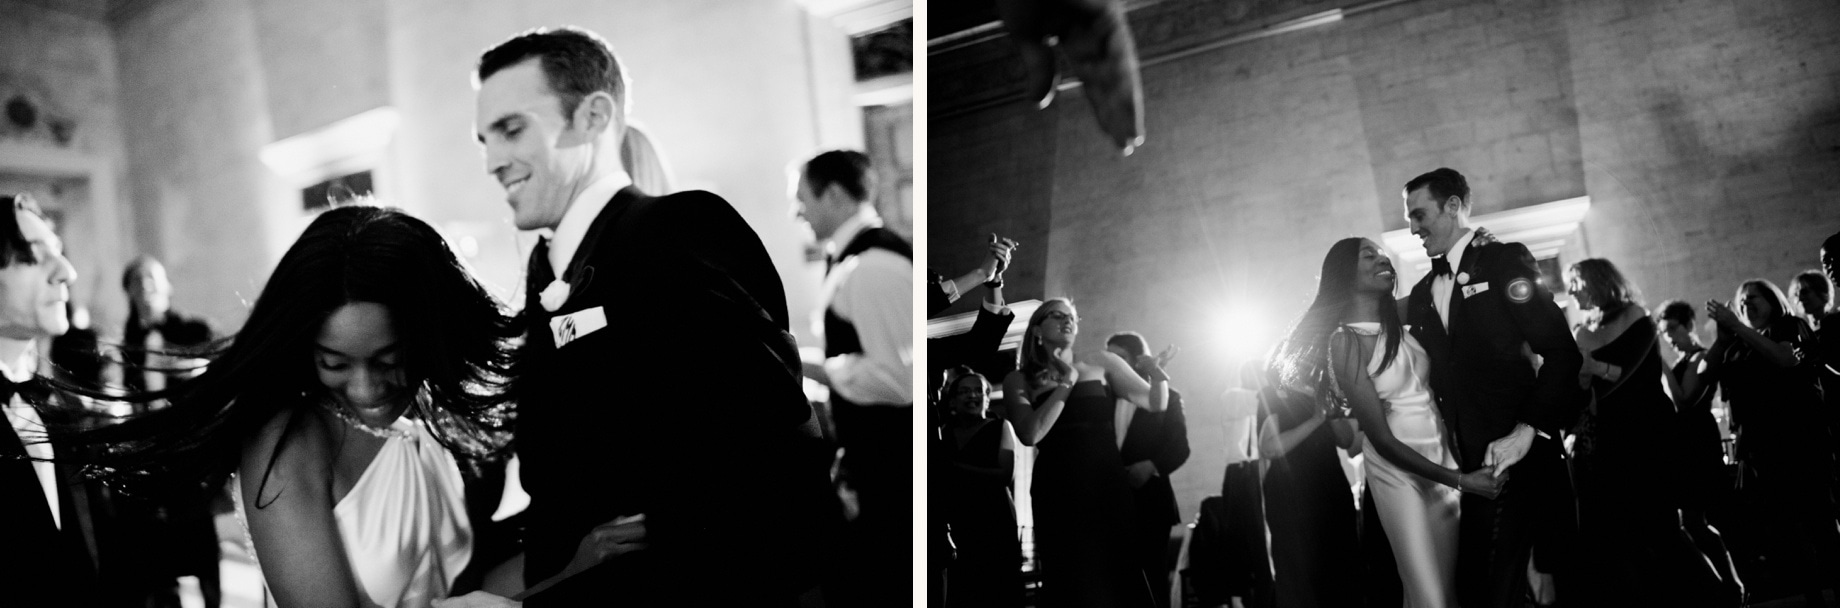 Detroit Institute of Arts wedding photography